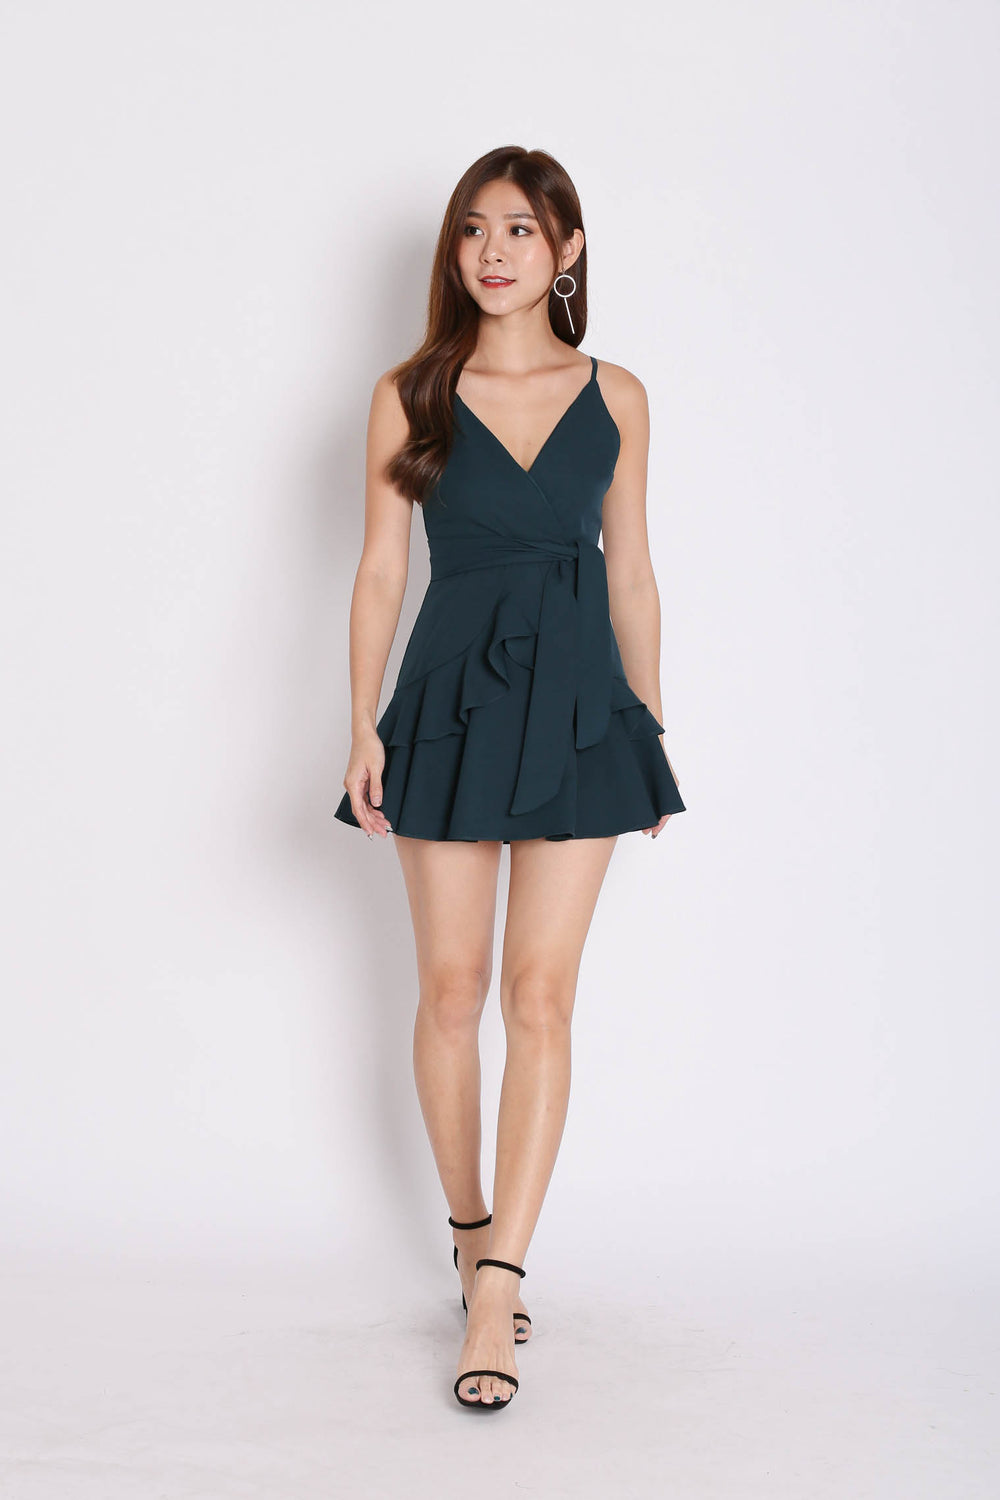 *TPZ* (PREMIUM) SAGE RUFFLES DRESS ROMPER IN FOREST